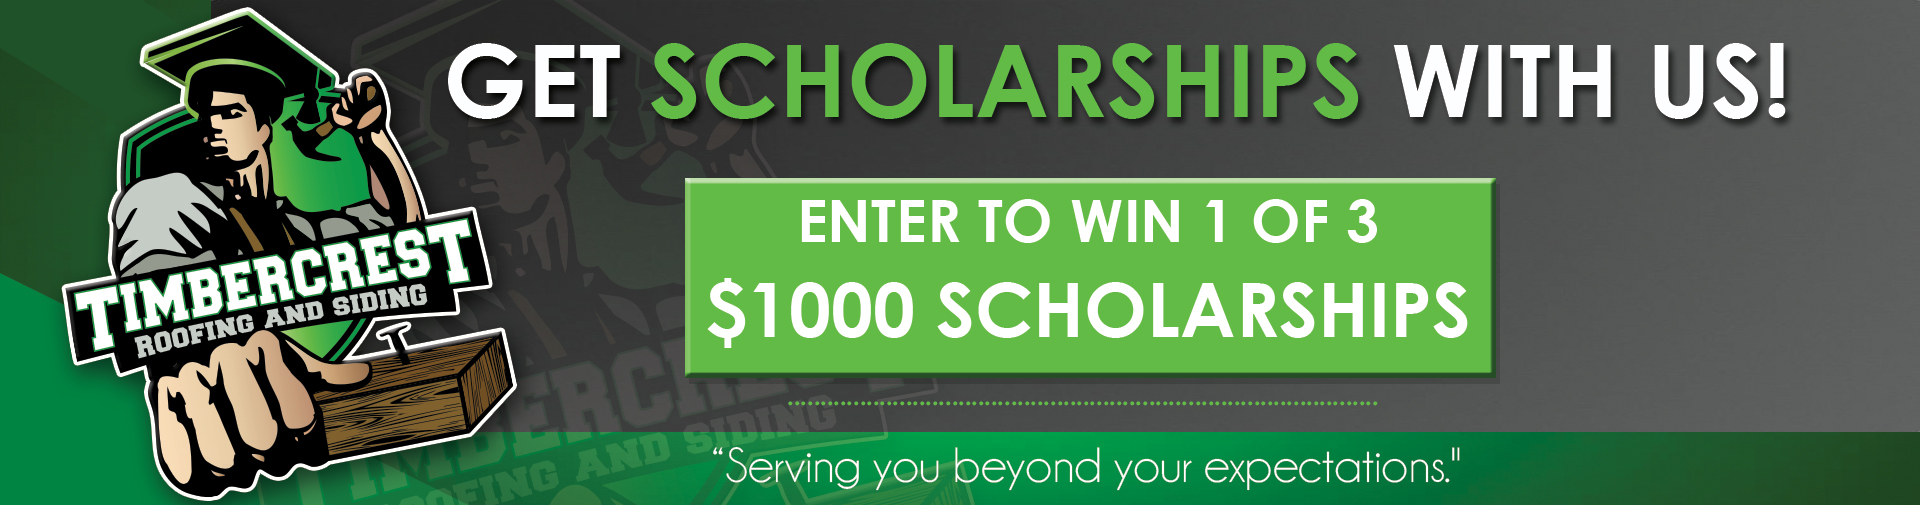 Timbercrest Roofing and Siding Scholarships